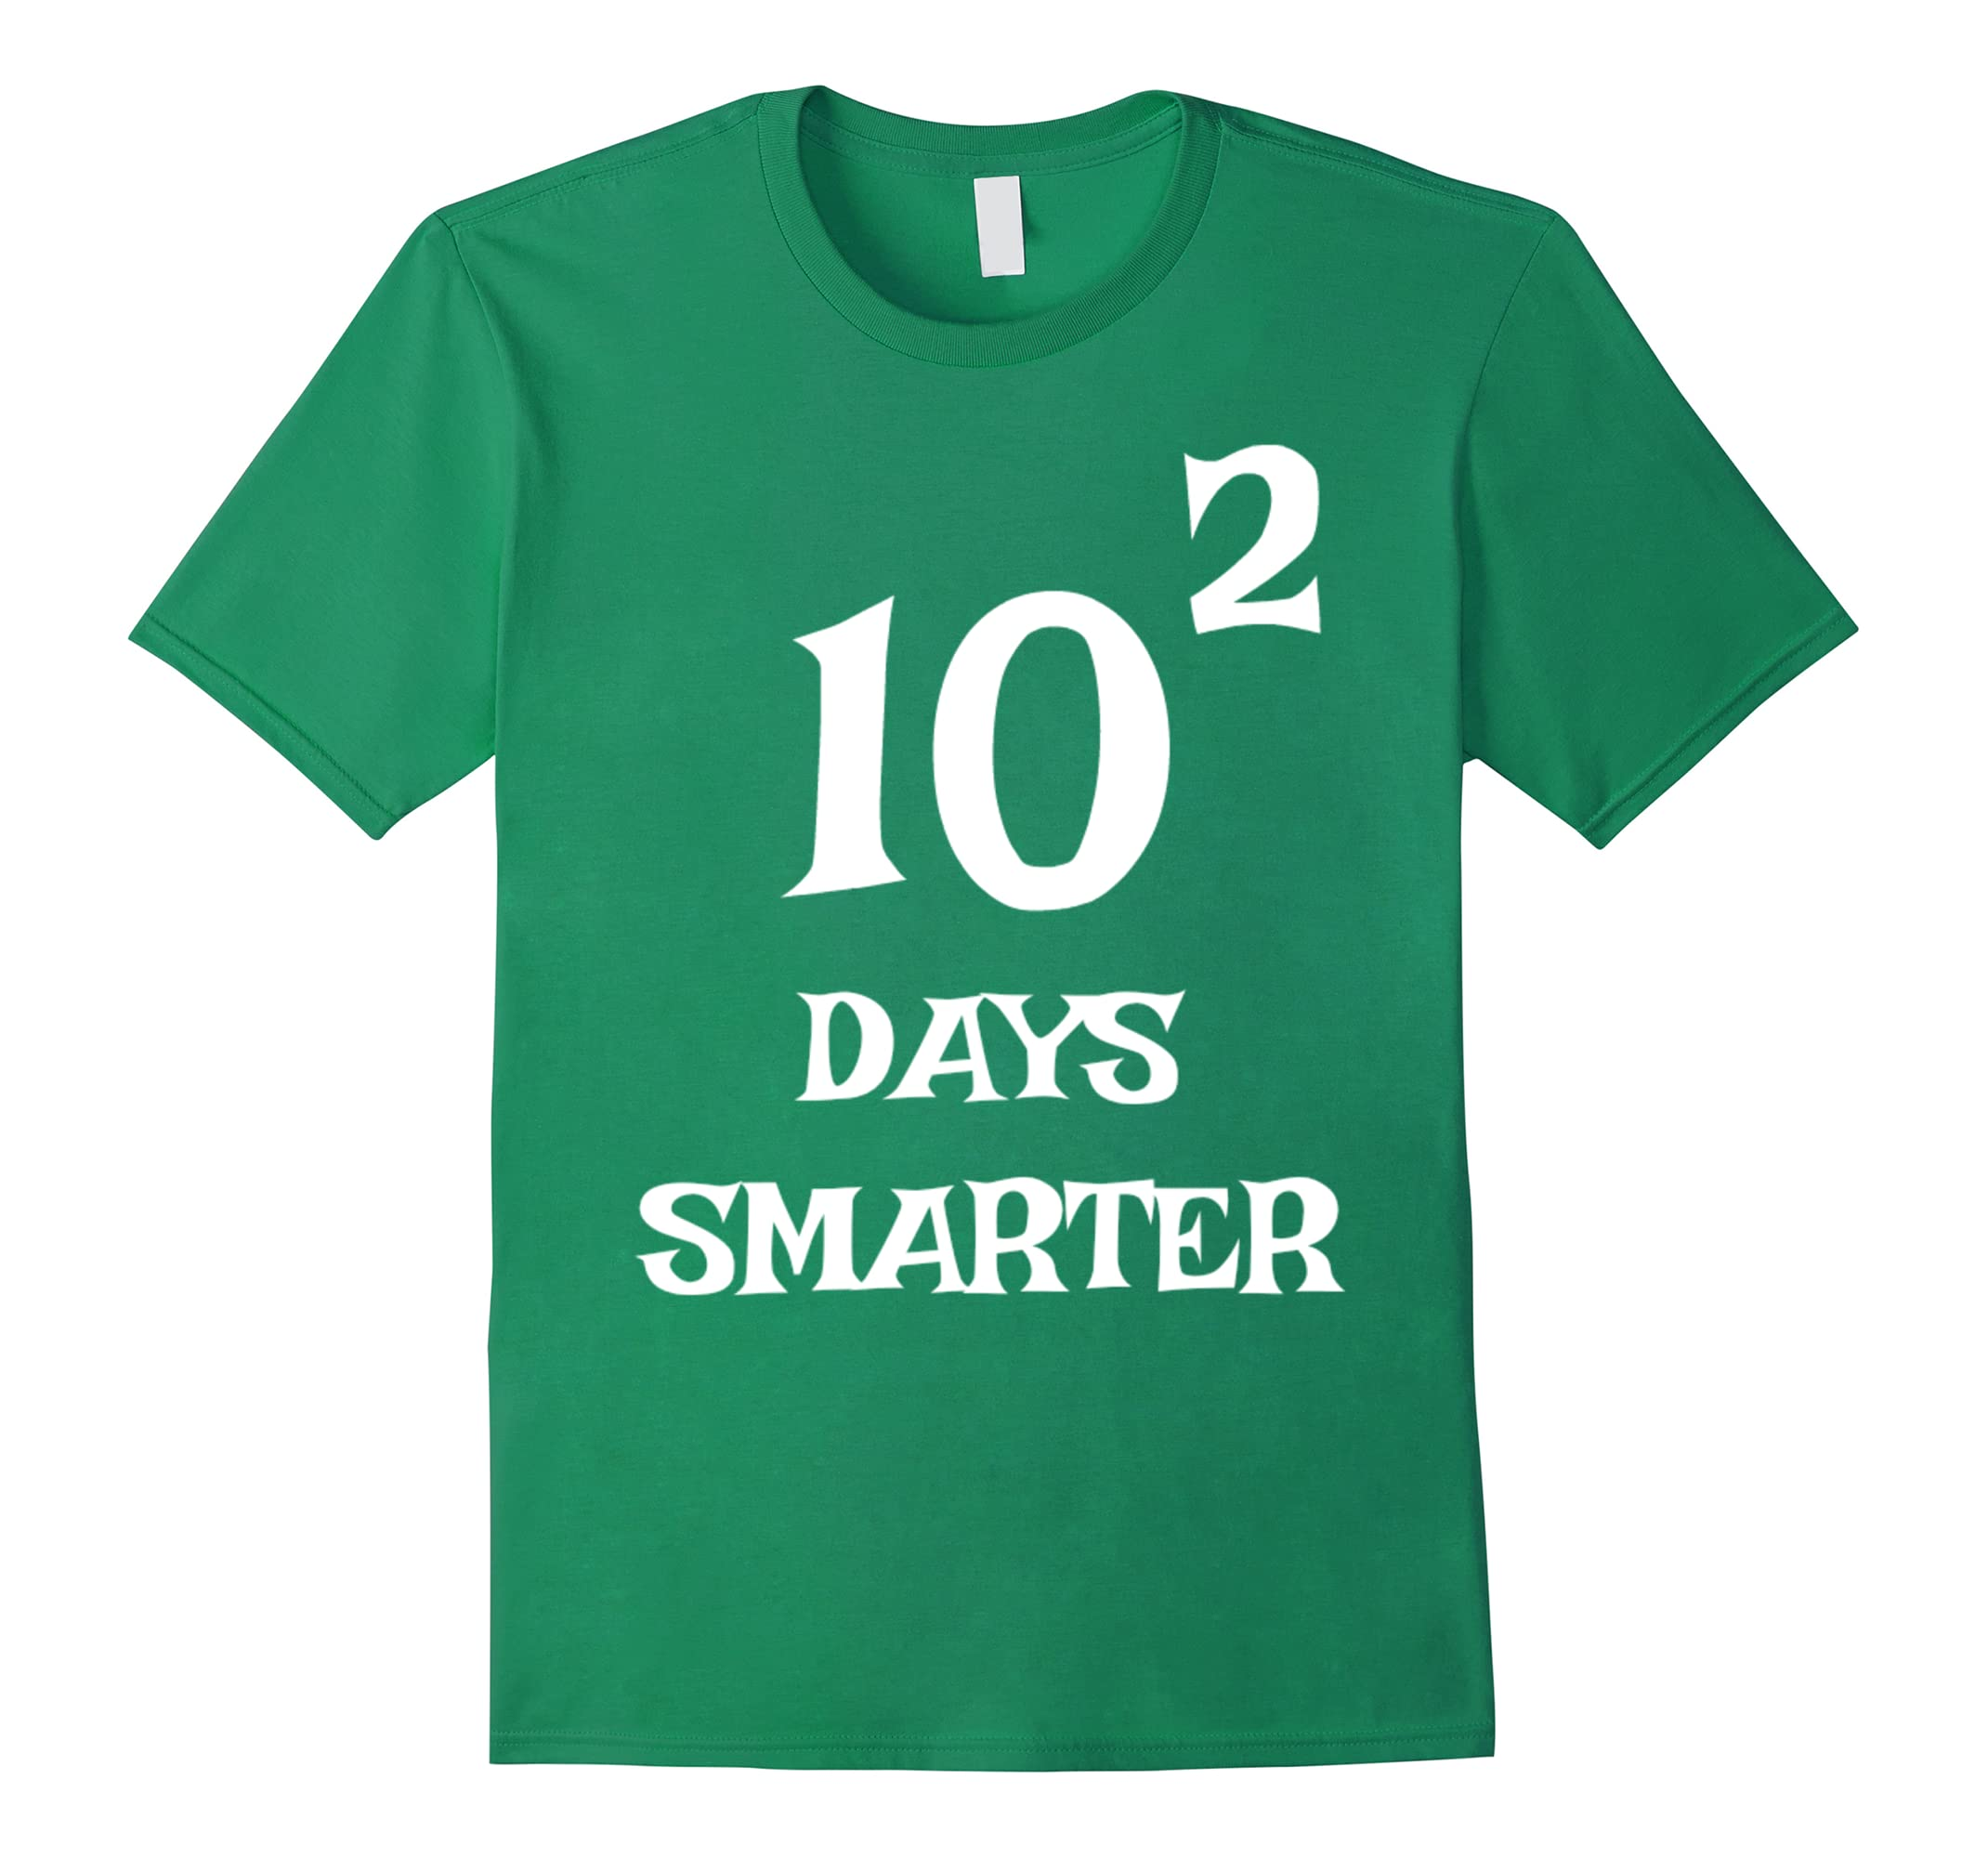 10 Squared Is 100 Days Smarter T-shirt Funny Math 100th Day-RT ...